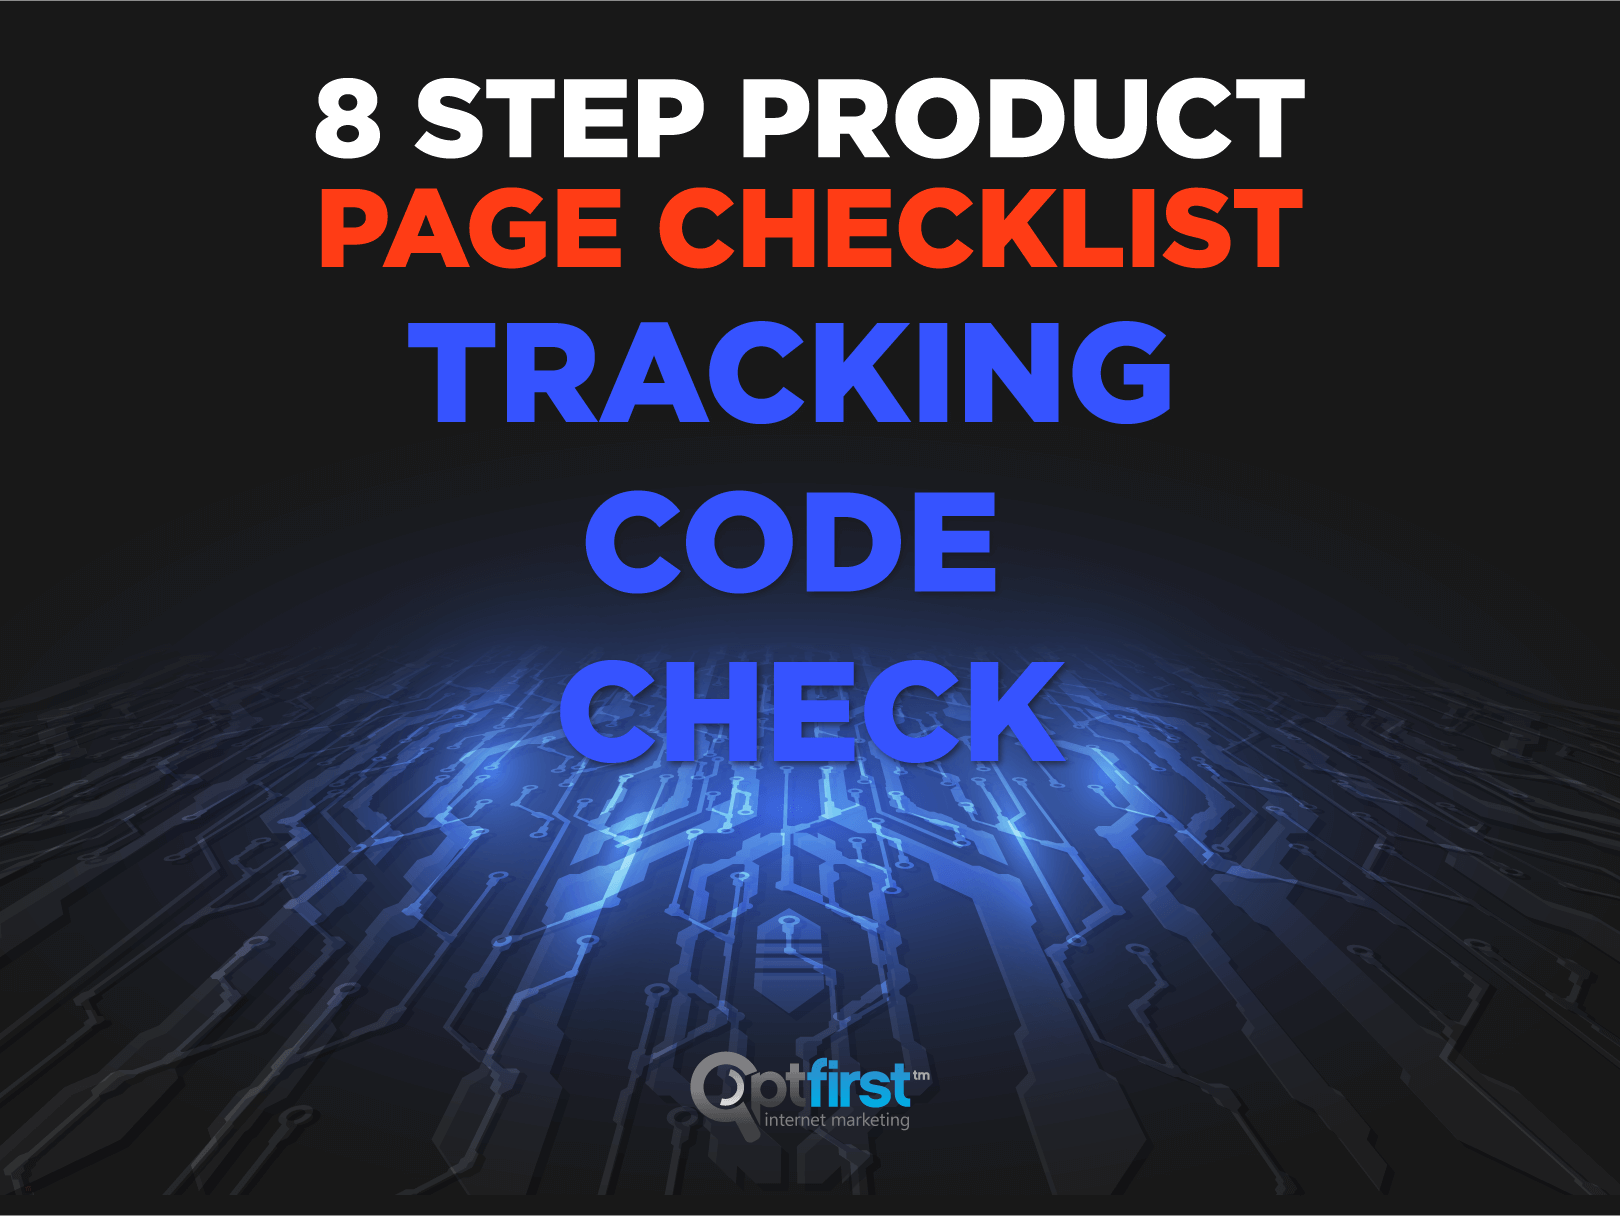 8 Step Product Page Checklist– Step 2: Tracking Code Check